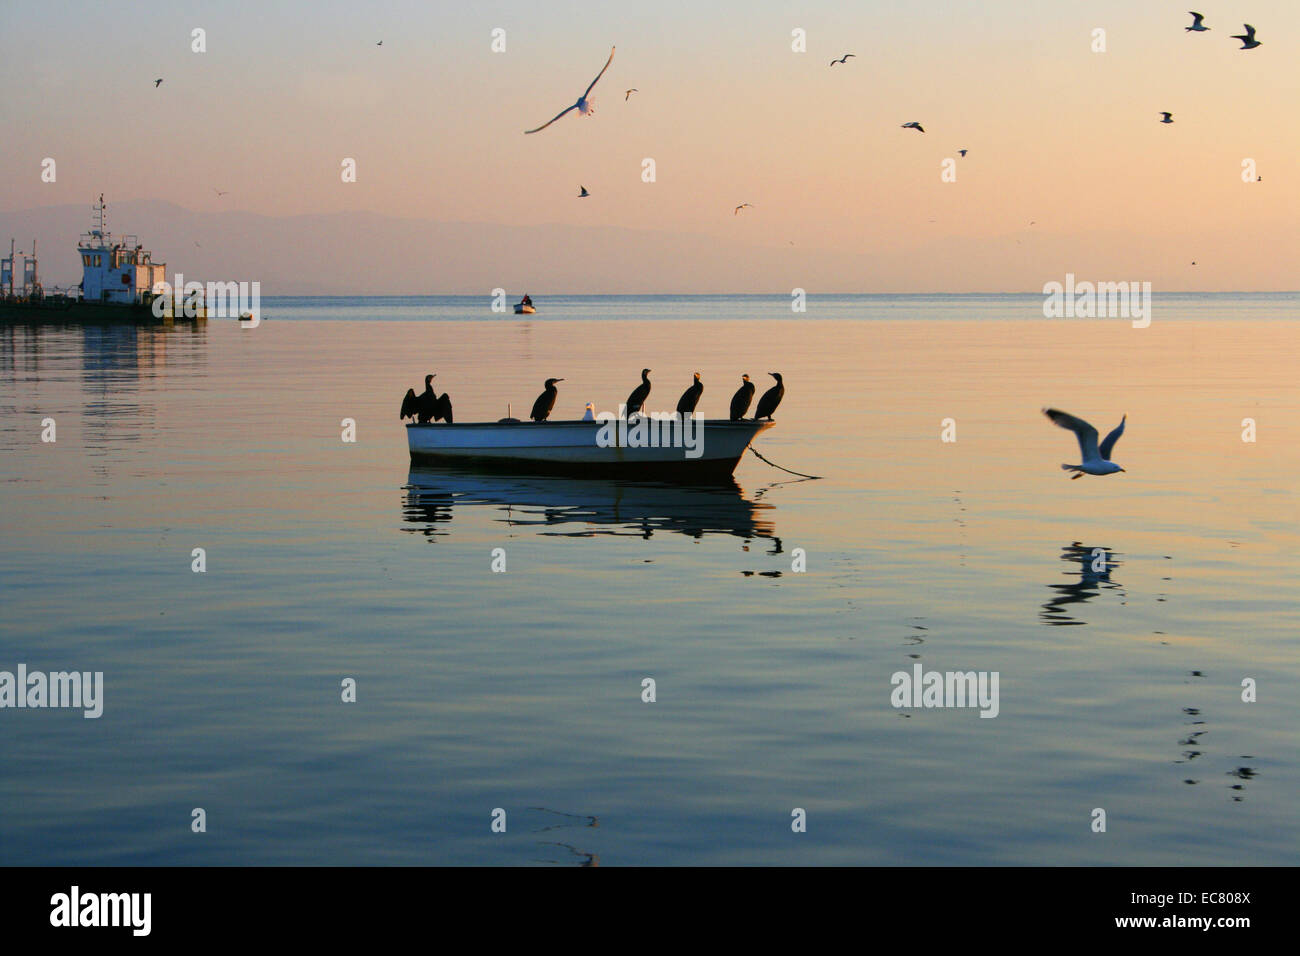 Seabirds on boat at sunset in Istanbul,Turkey - Stock Image